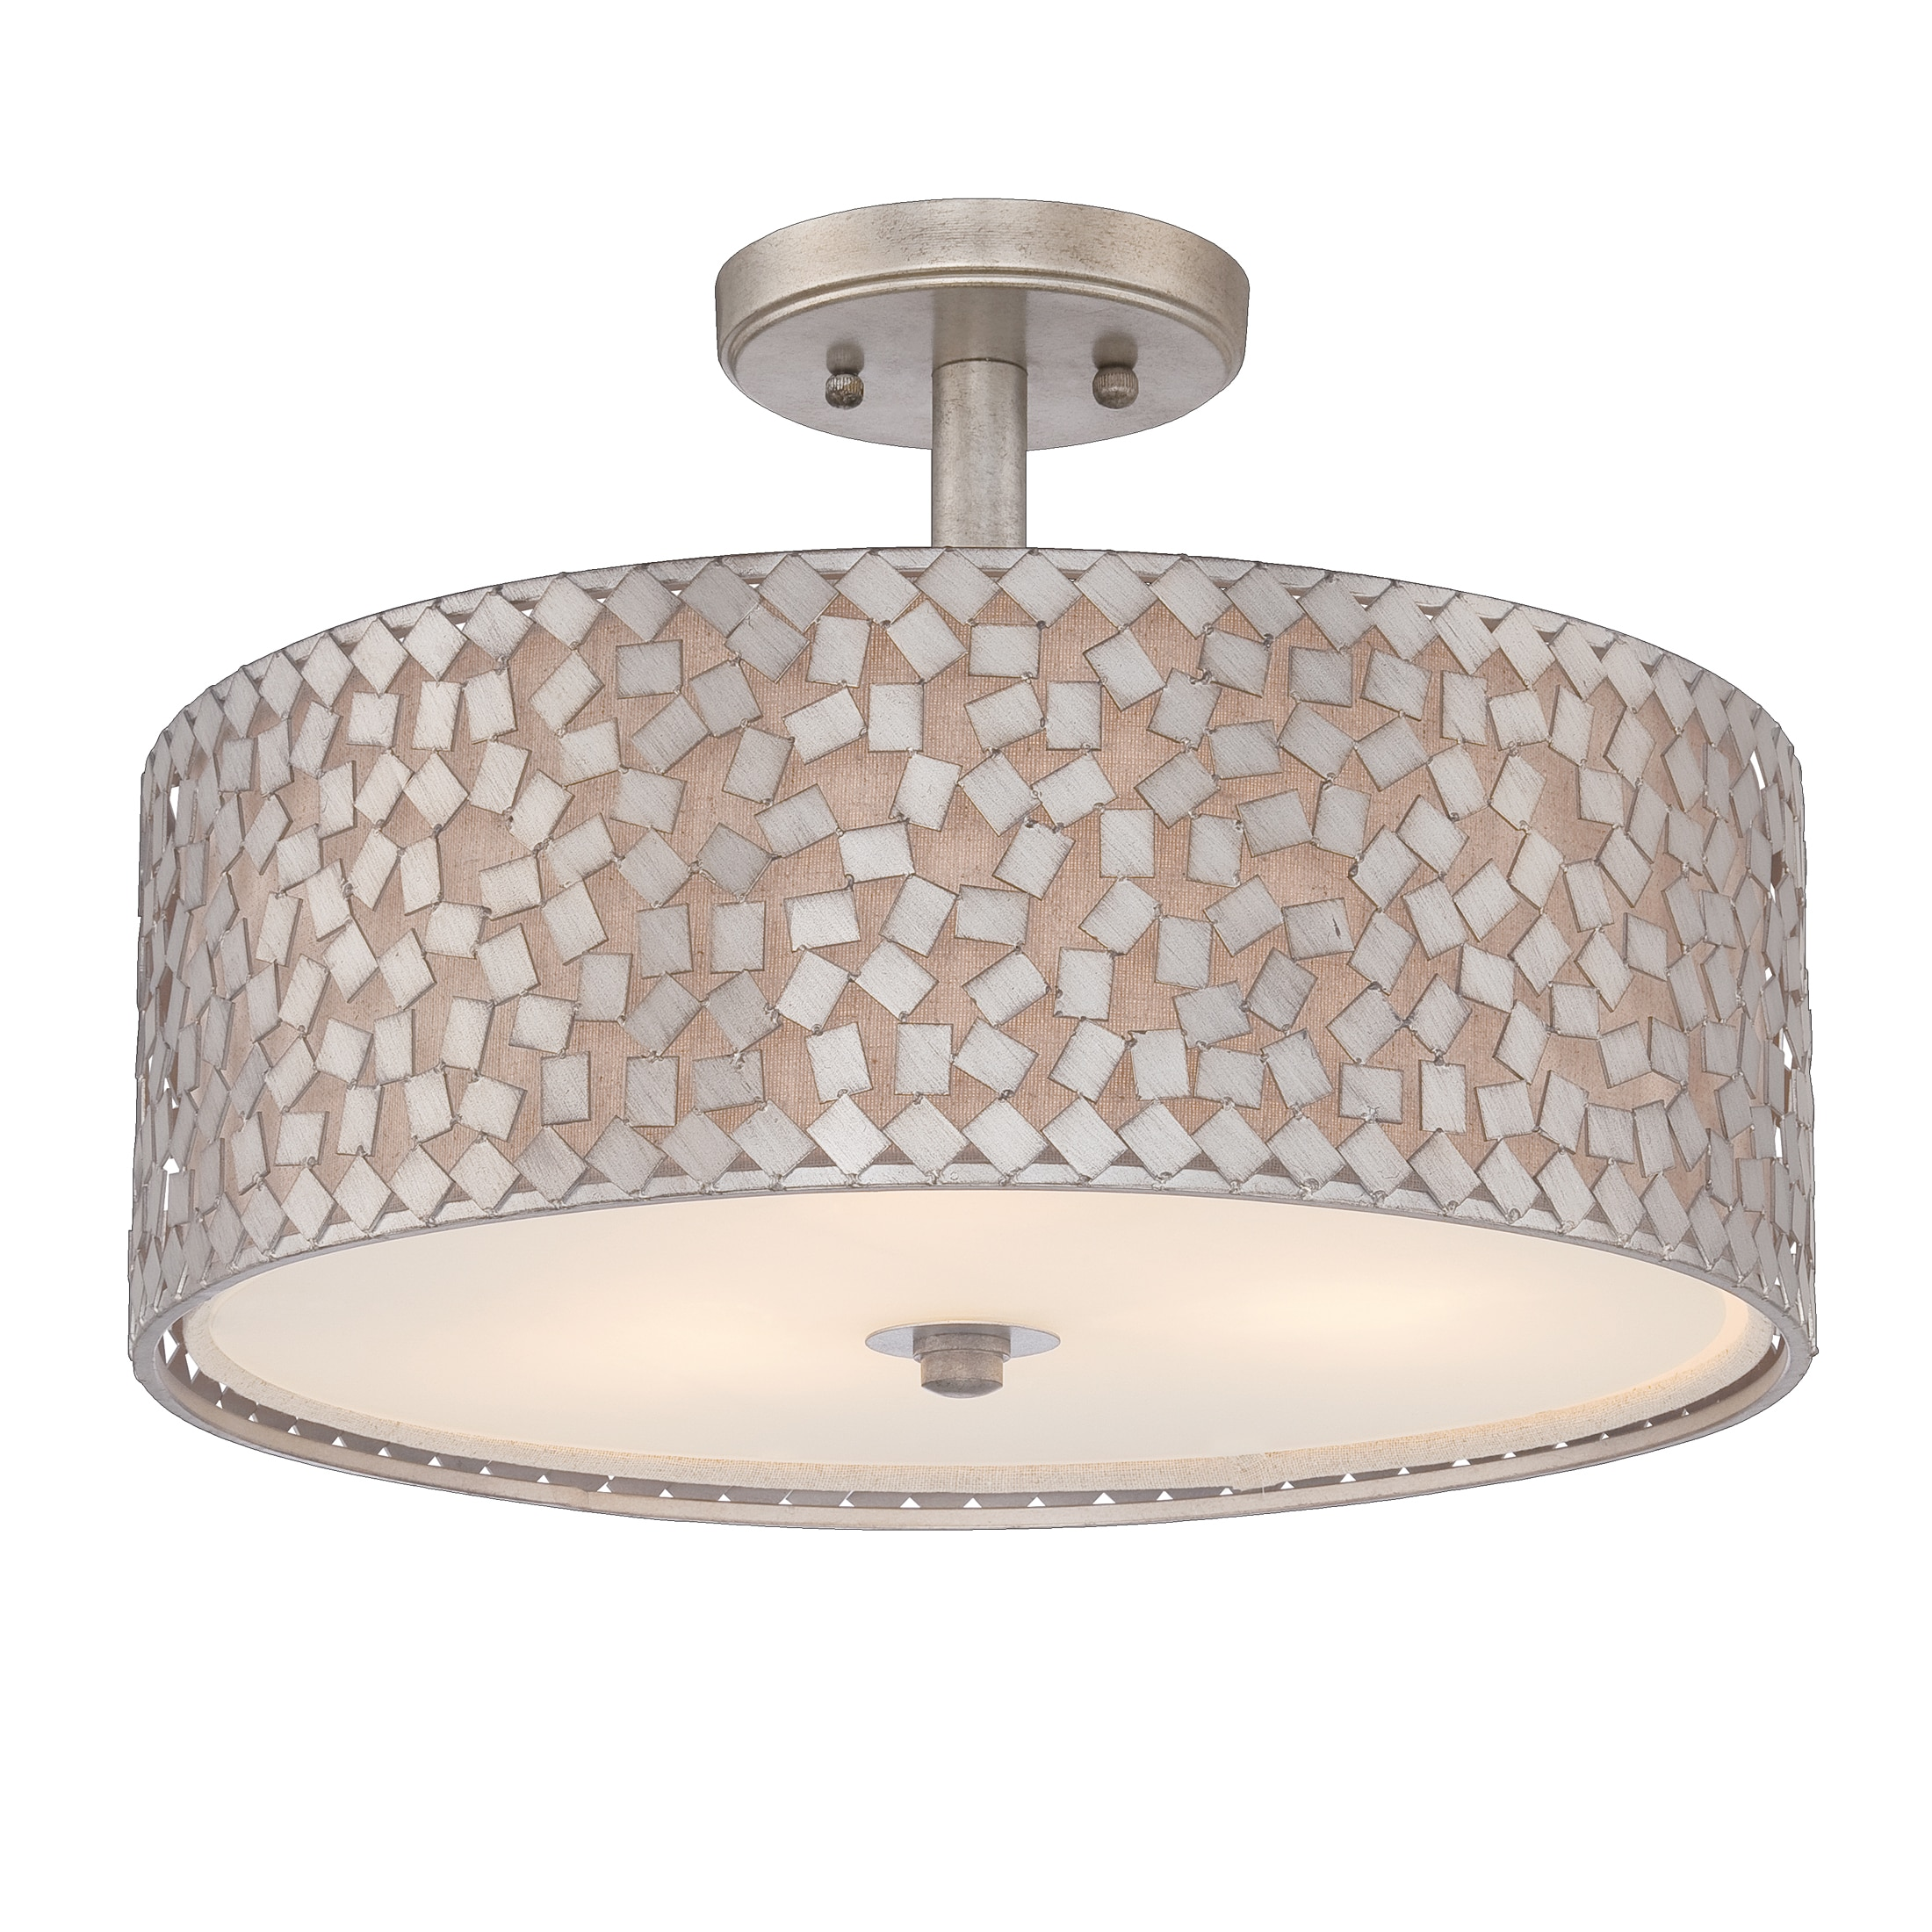 Quoizel 'Confetti' Semi-flush 3-light Mount